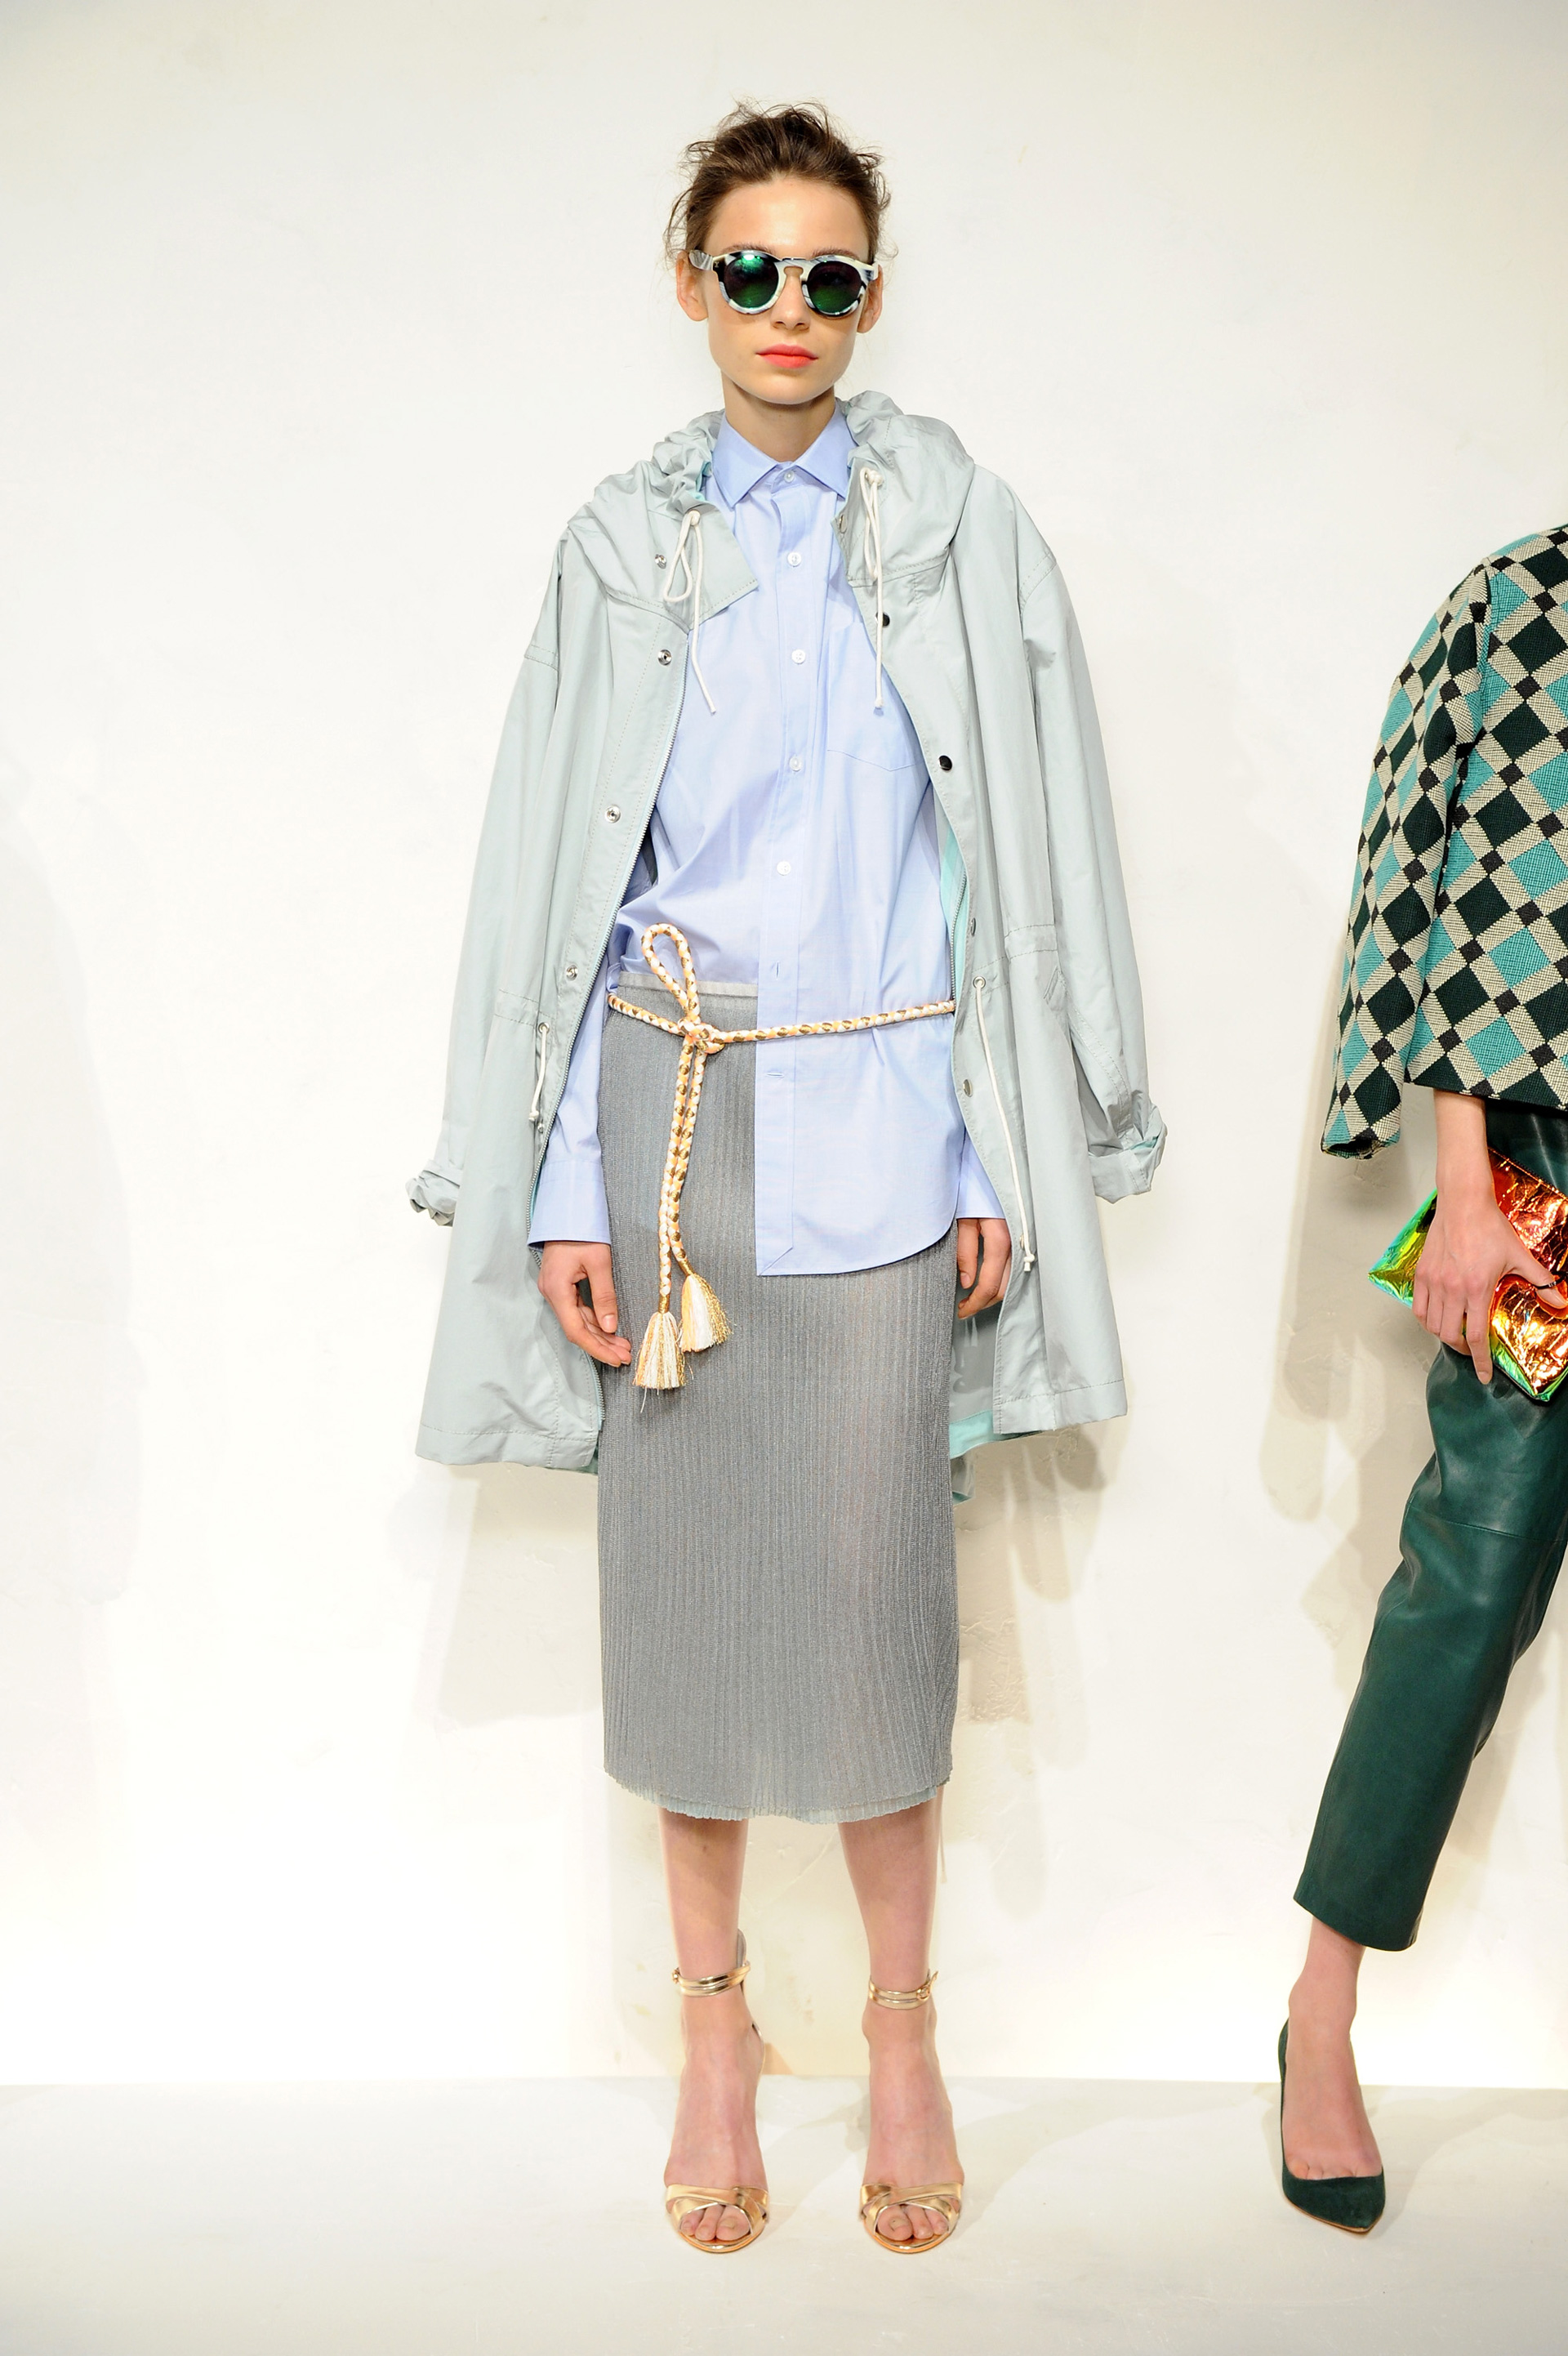 2015 J.Crew collection pieces 10